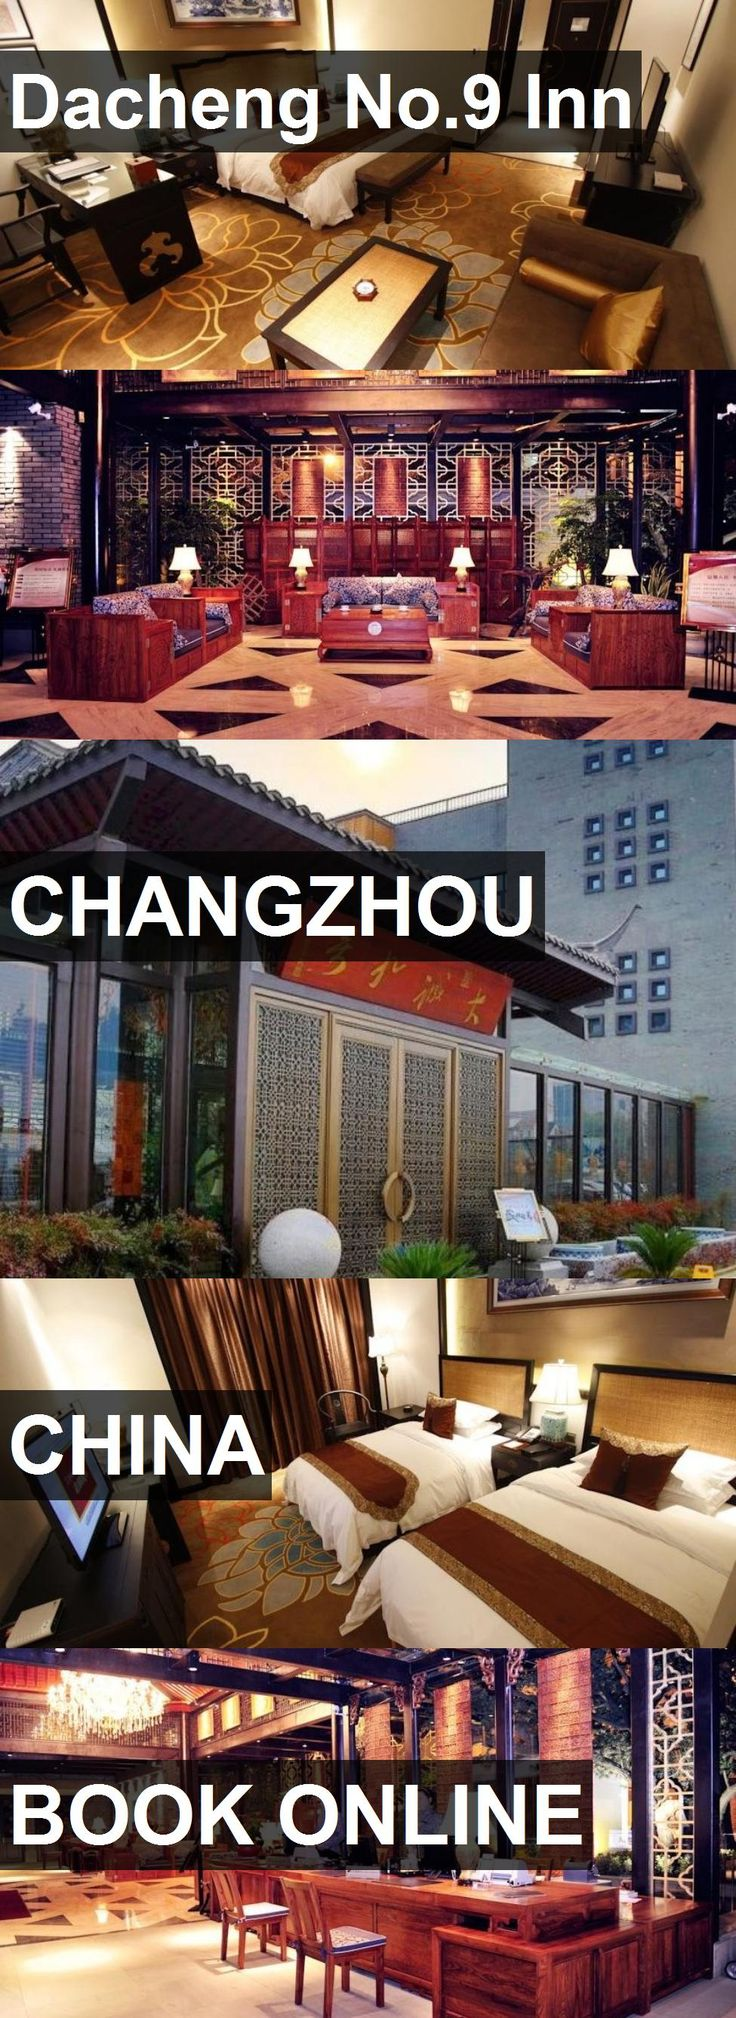 Hotel Dacheng No.9 Inn in Changzhou, China. For more information, photos, reviews and best prices please follow the link. #China #Changzhou #travel #vacation #hotel